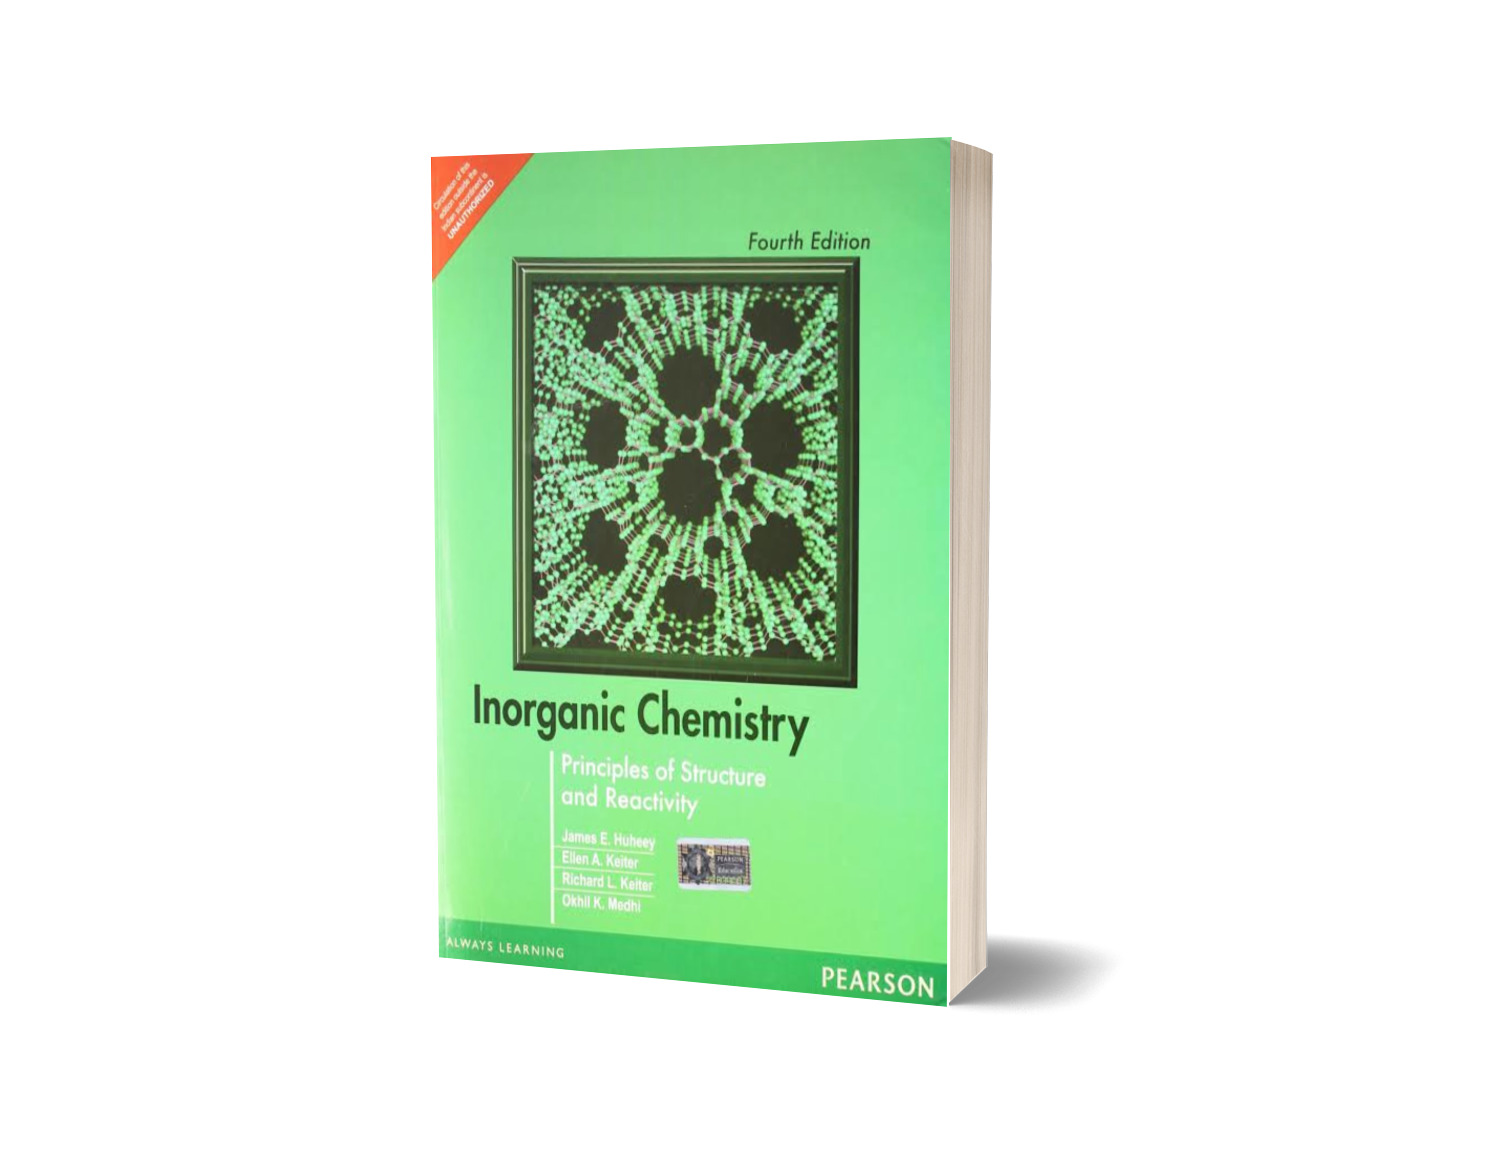 Principles of Structure and Reactivity Inorganic Chemistry 4th Edition